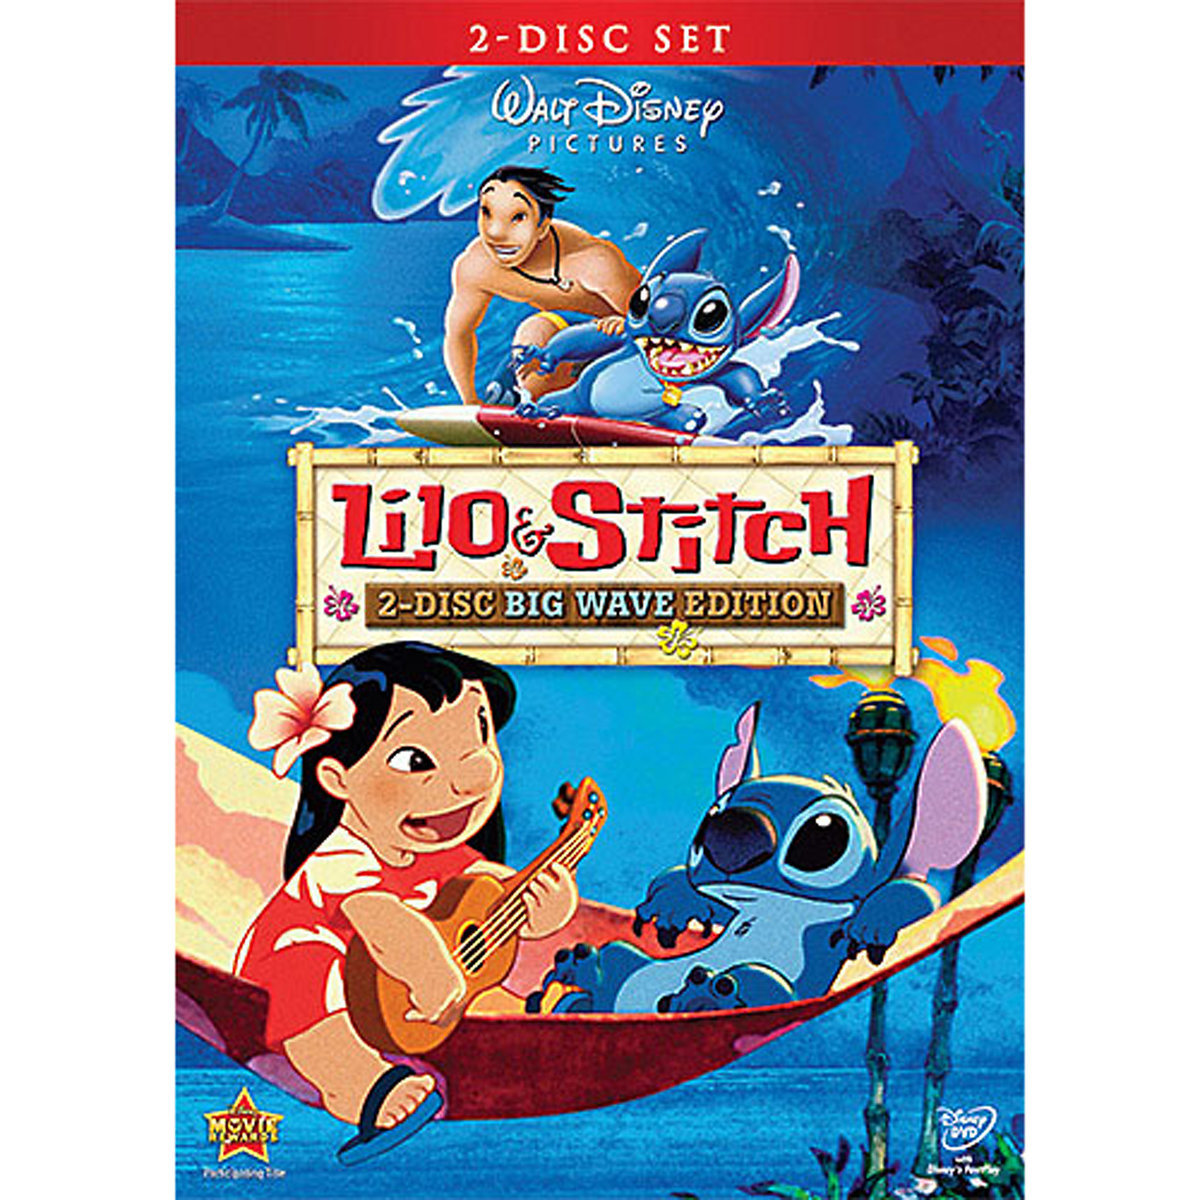 Lilo & Stitch (2-Disc Big Wave Edition) (DVD)